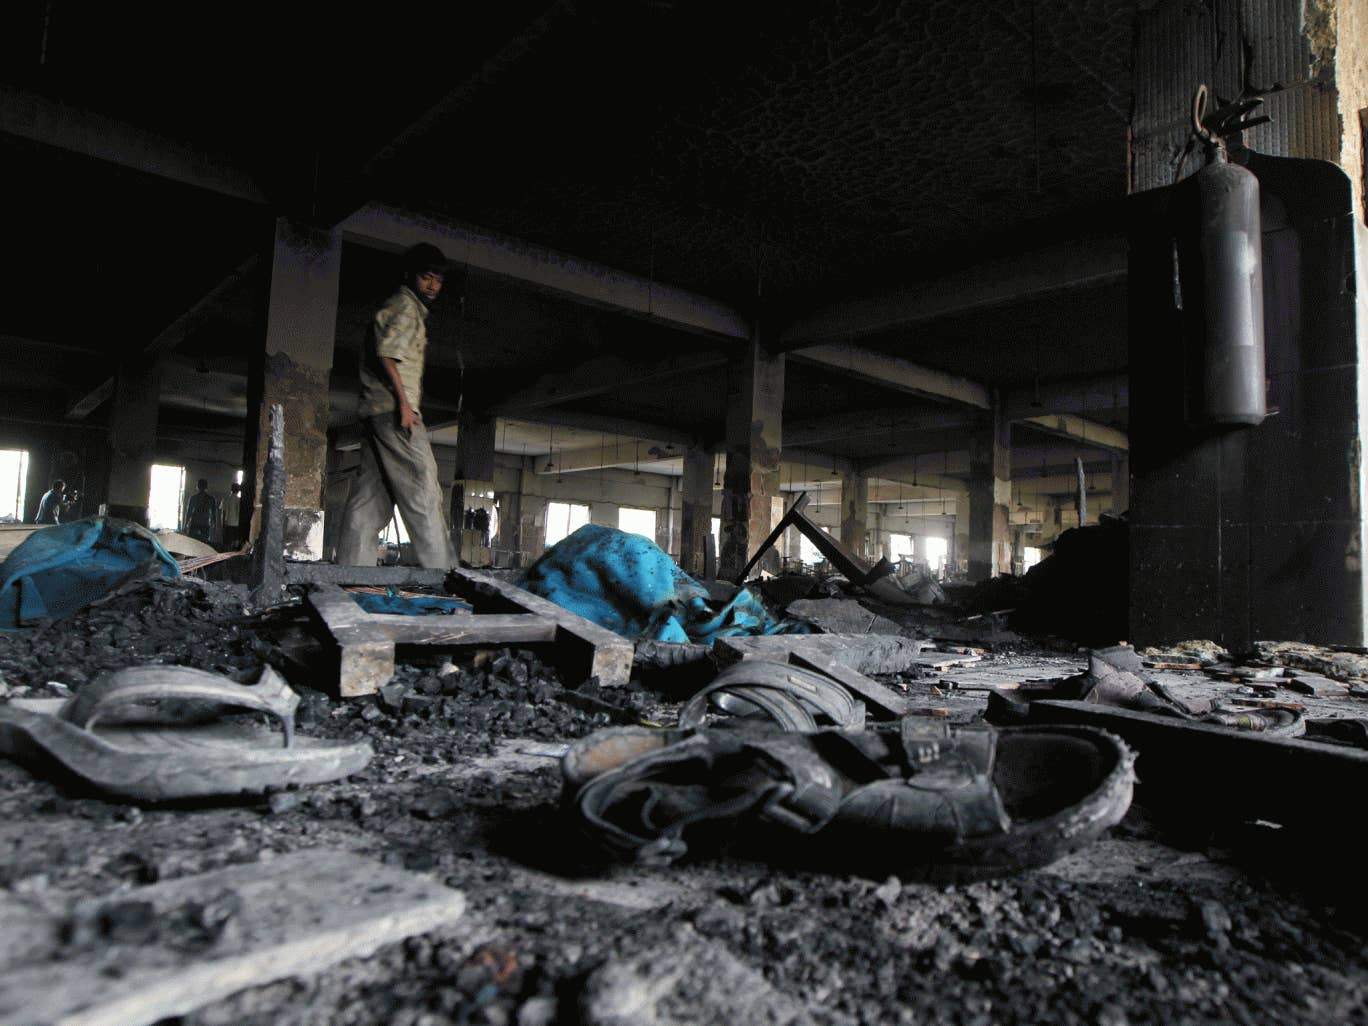 The charred remains of the Tazreen Fashion factory after a fire last November that killed 110 workers. It is claimed that factory managers had prevented employees from escaping the blaze.